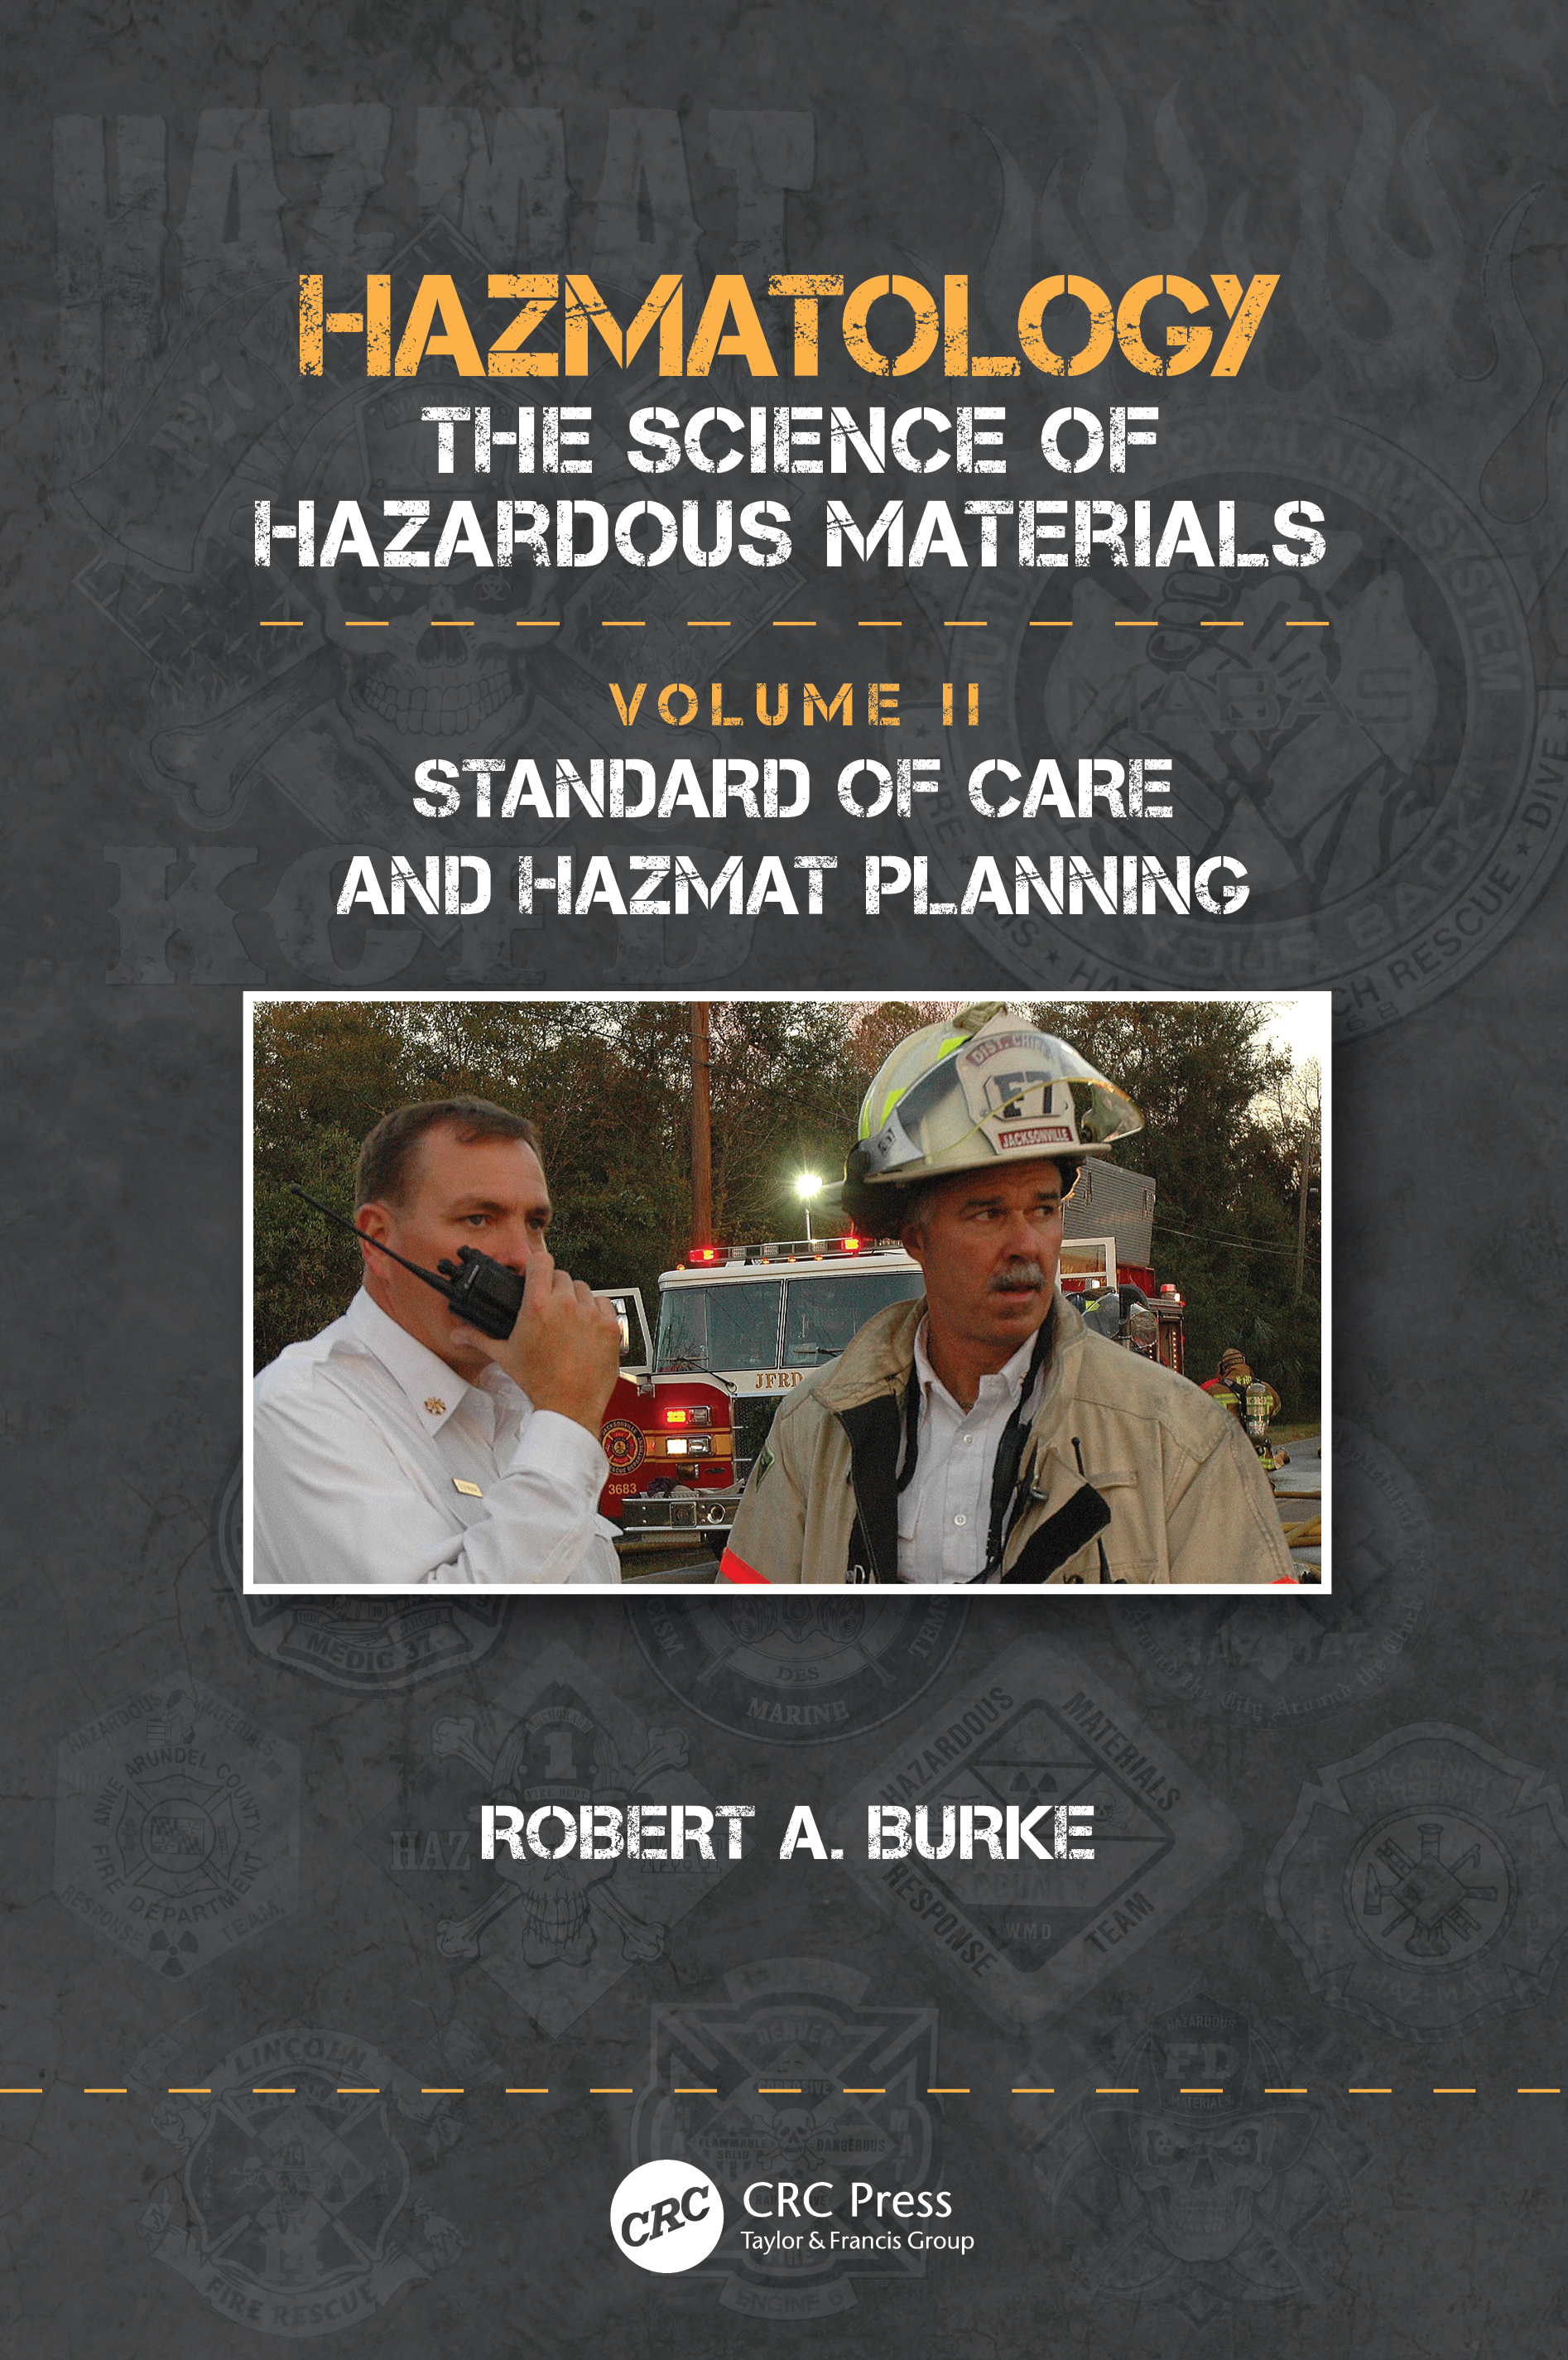 Standard of Care and Hazmat Planning book cover